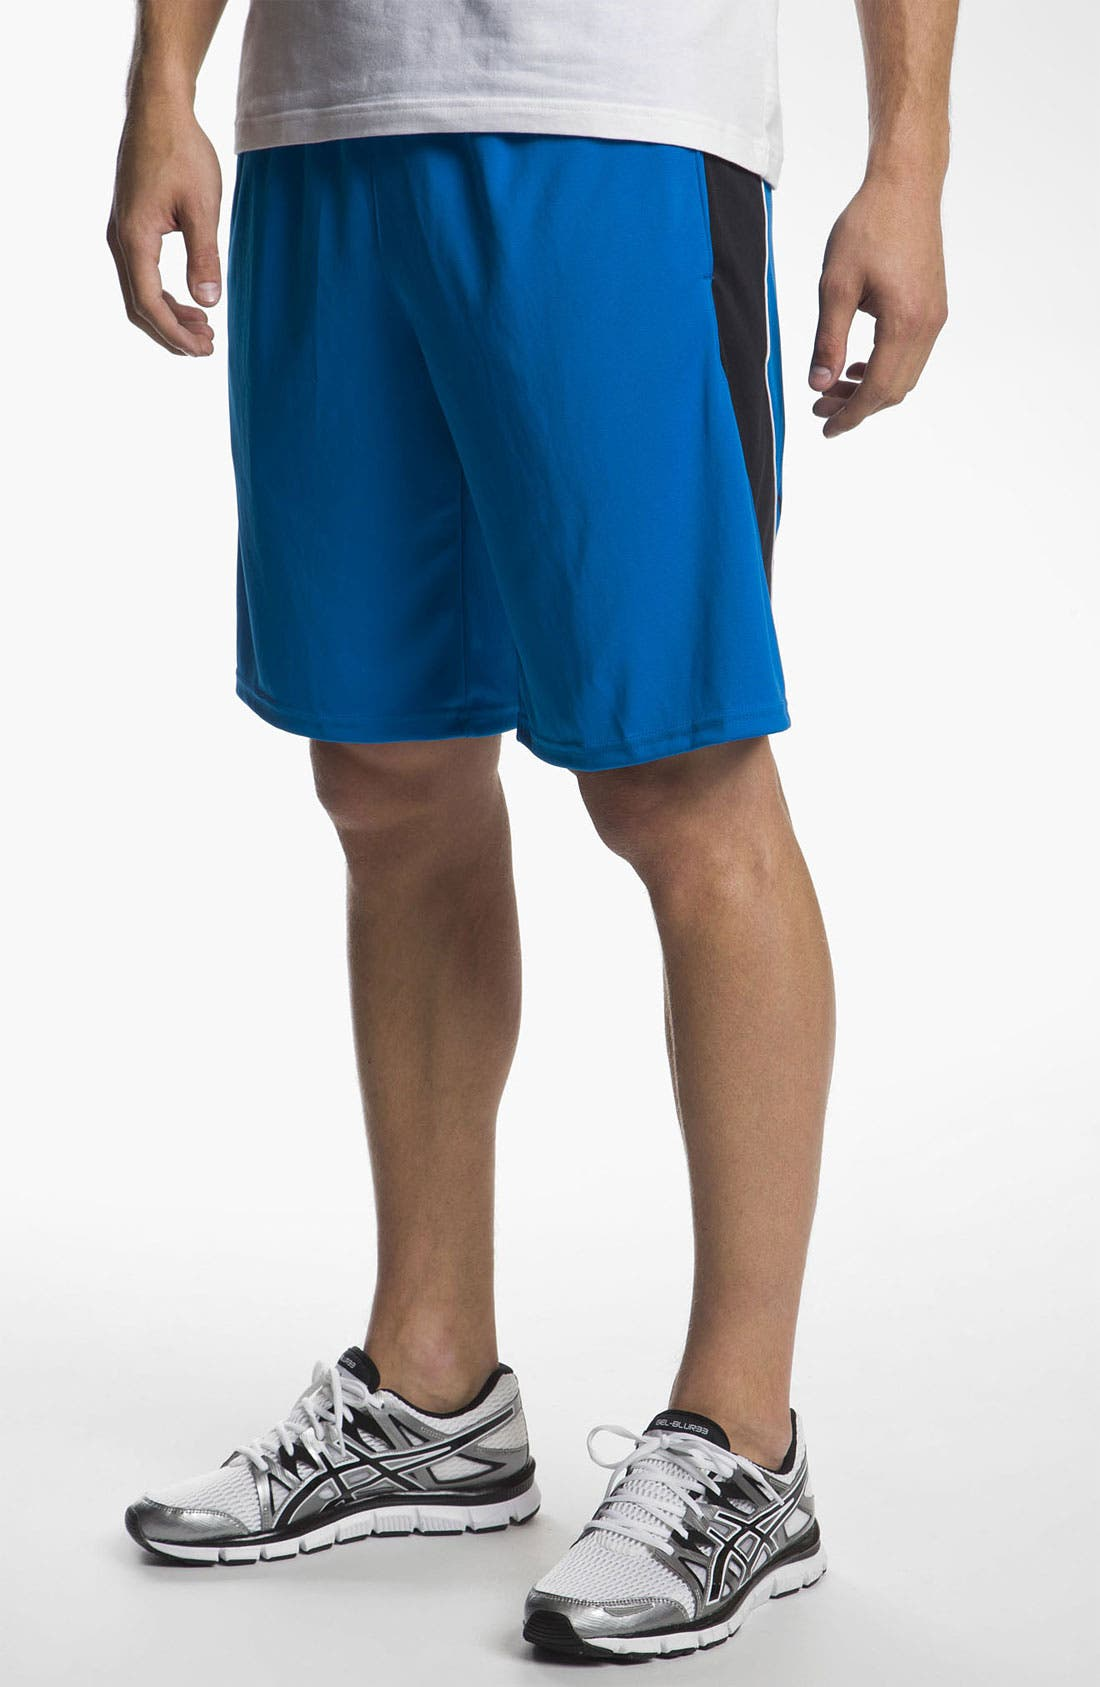 Main Image - Under Armour 'Multiplier' Knit Shorts